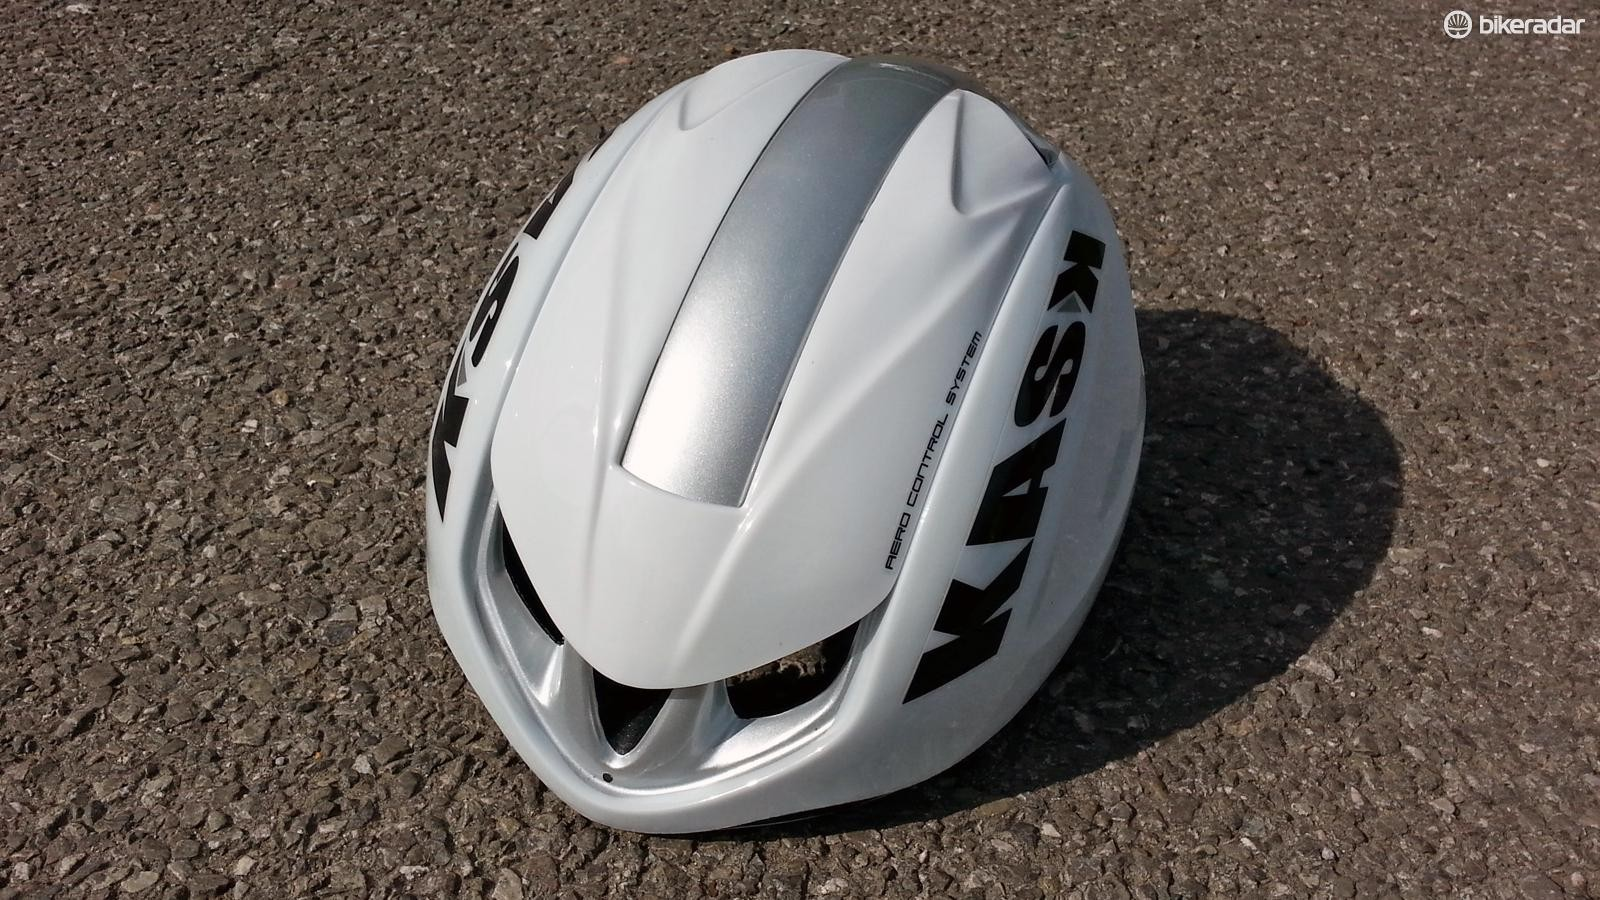 The Kask Infinity's major feature is a sliding top panel to reveal a row of vents